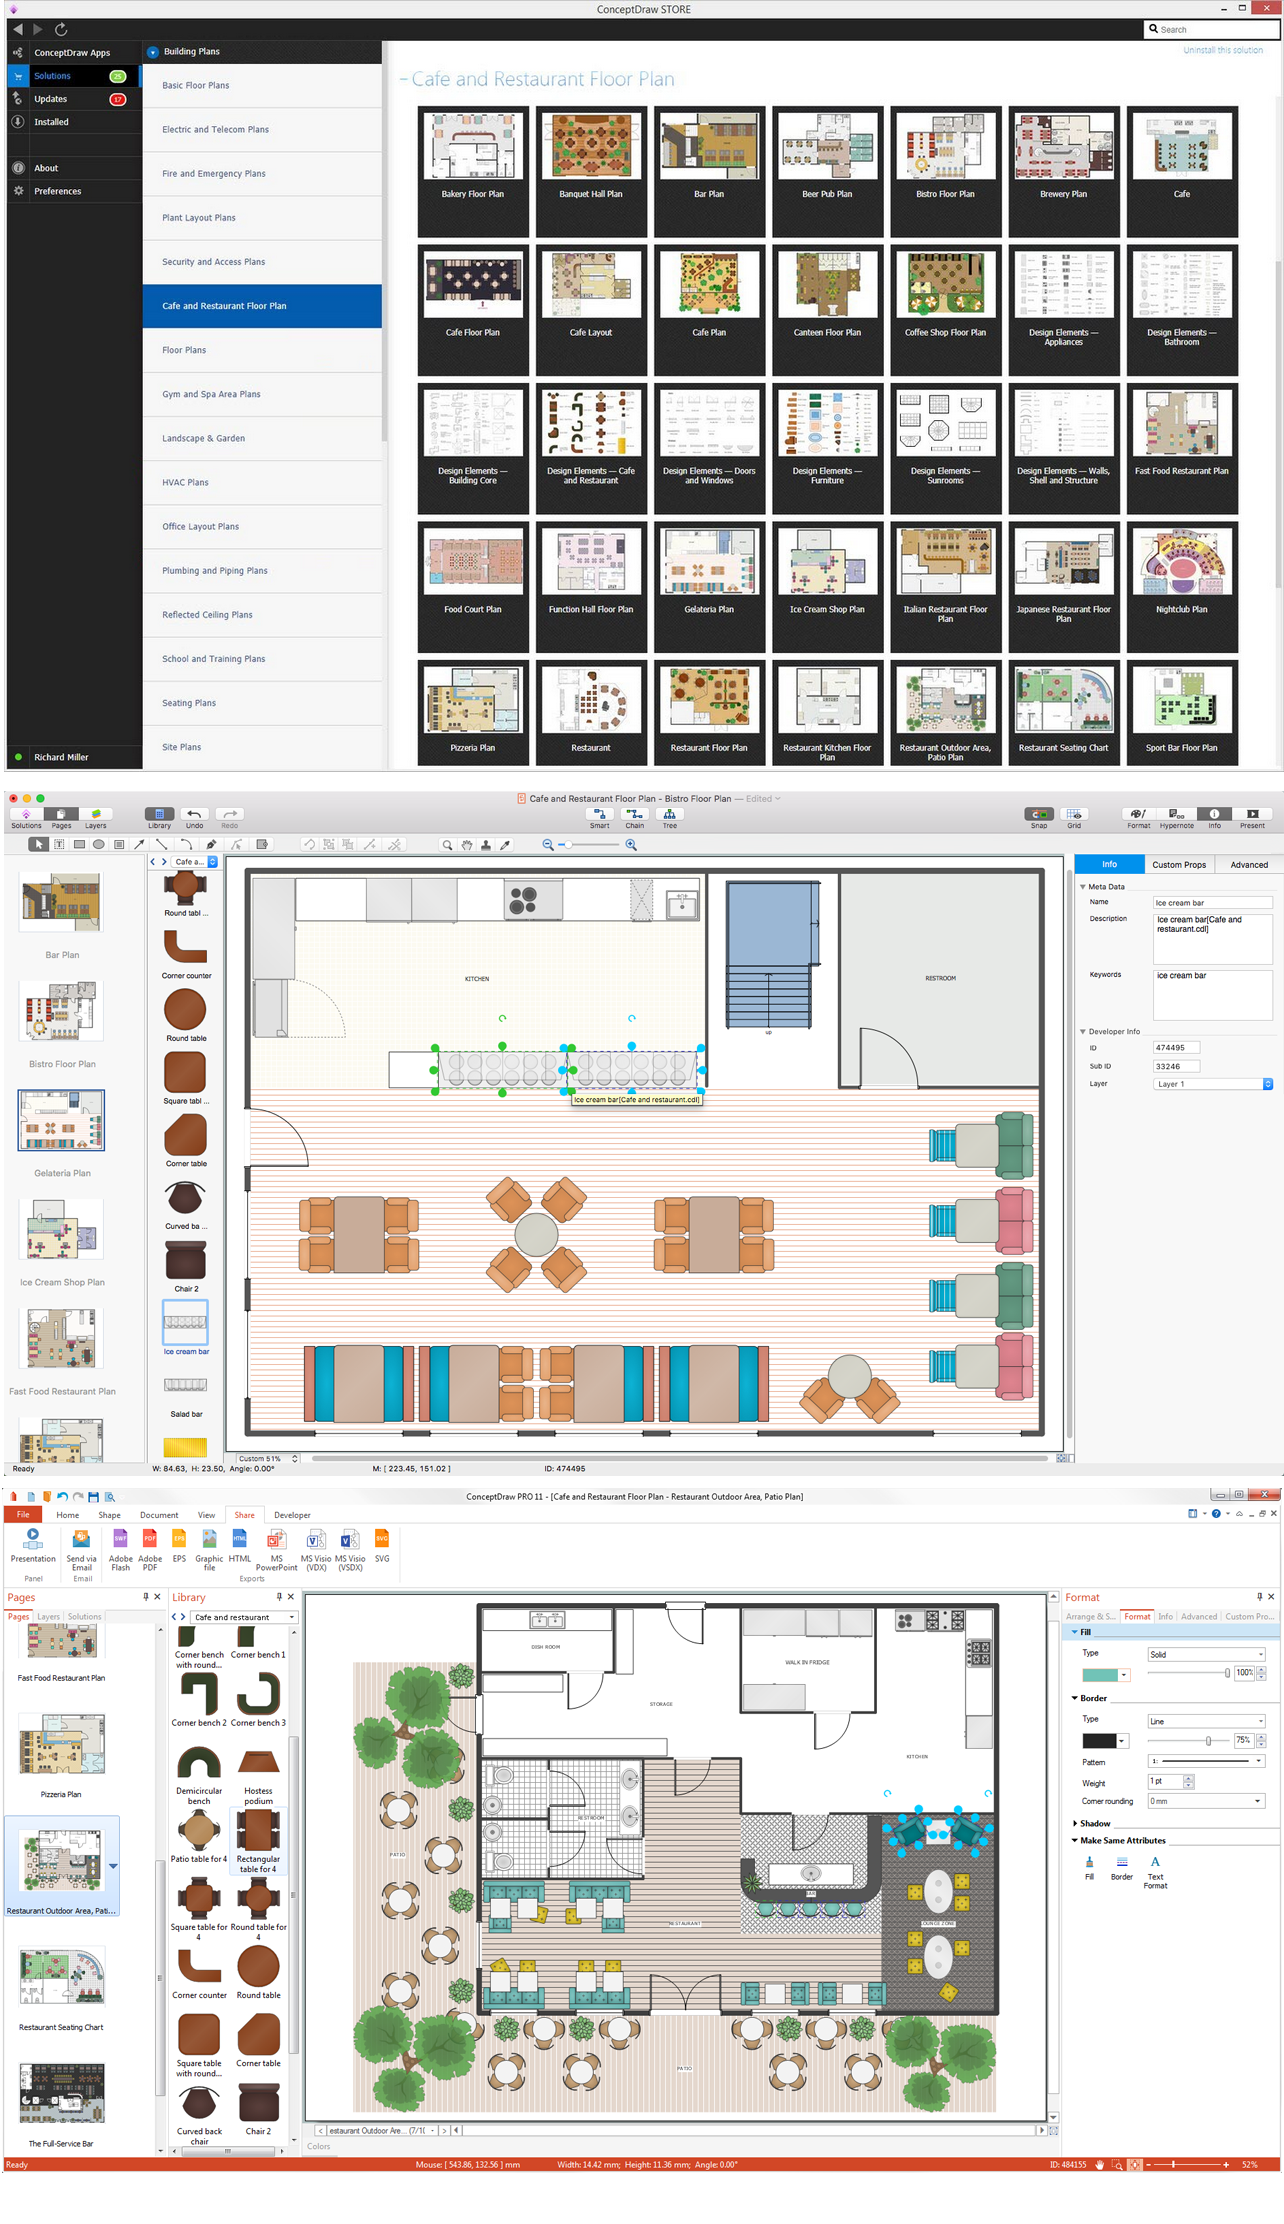 Restaurant floor plan software Floor plan software online